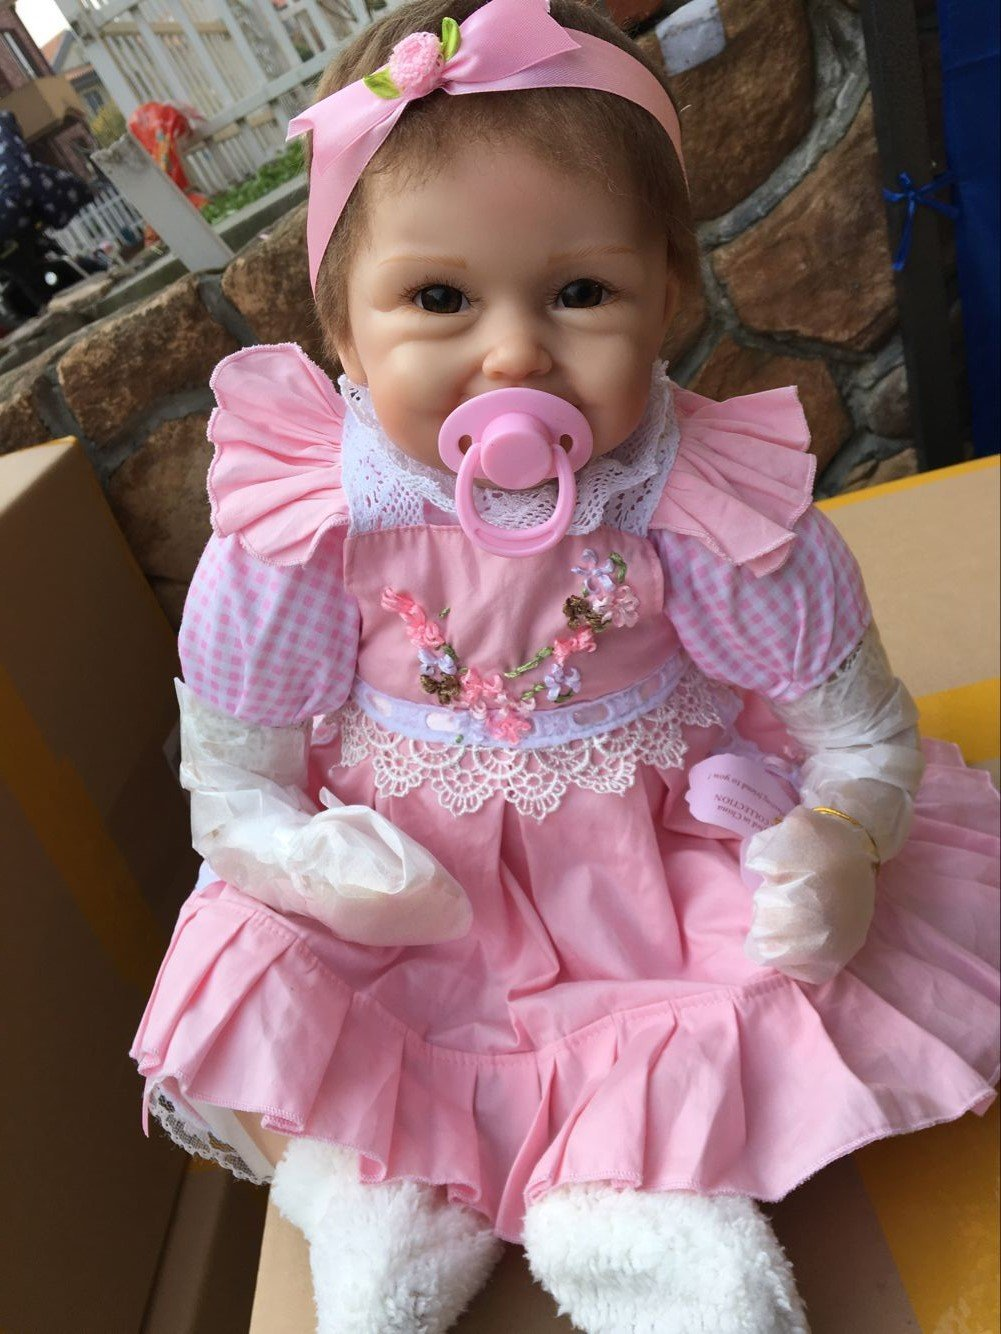 Funny House Hot 45cm18 Reborn Dolls Realistic Handmade Looking Lifelike Soft Silicone Vinyl Child Growth Partner Cute and Lovely Pink Dress Birthday Xmas Present Free Magnet Pacifier Cheap by Funny House